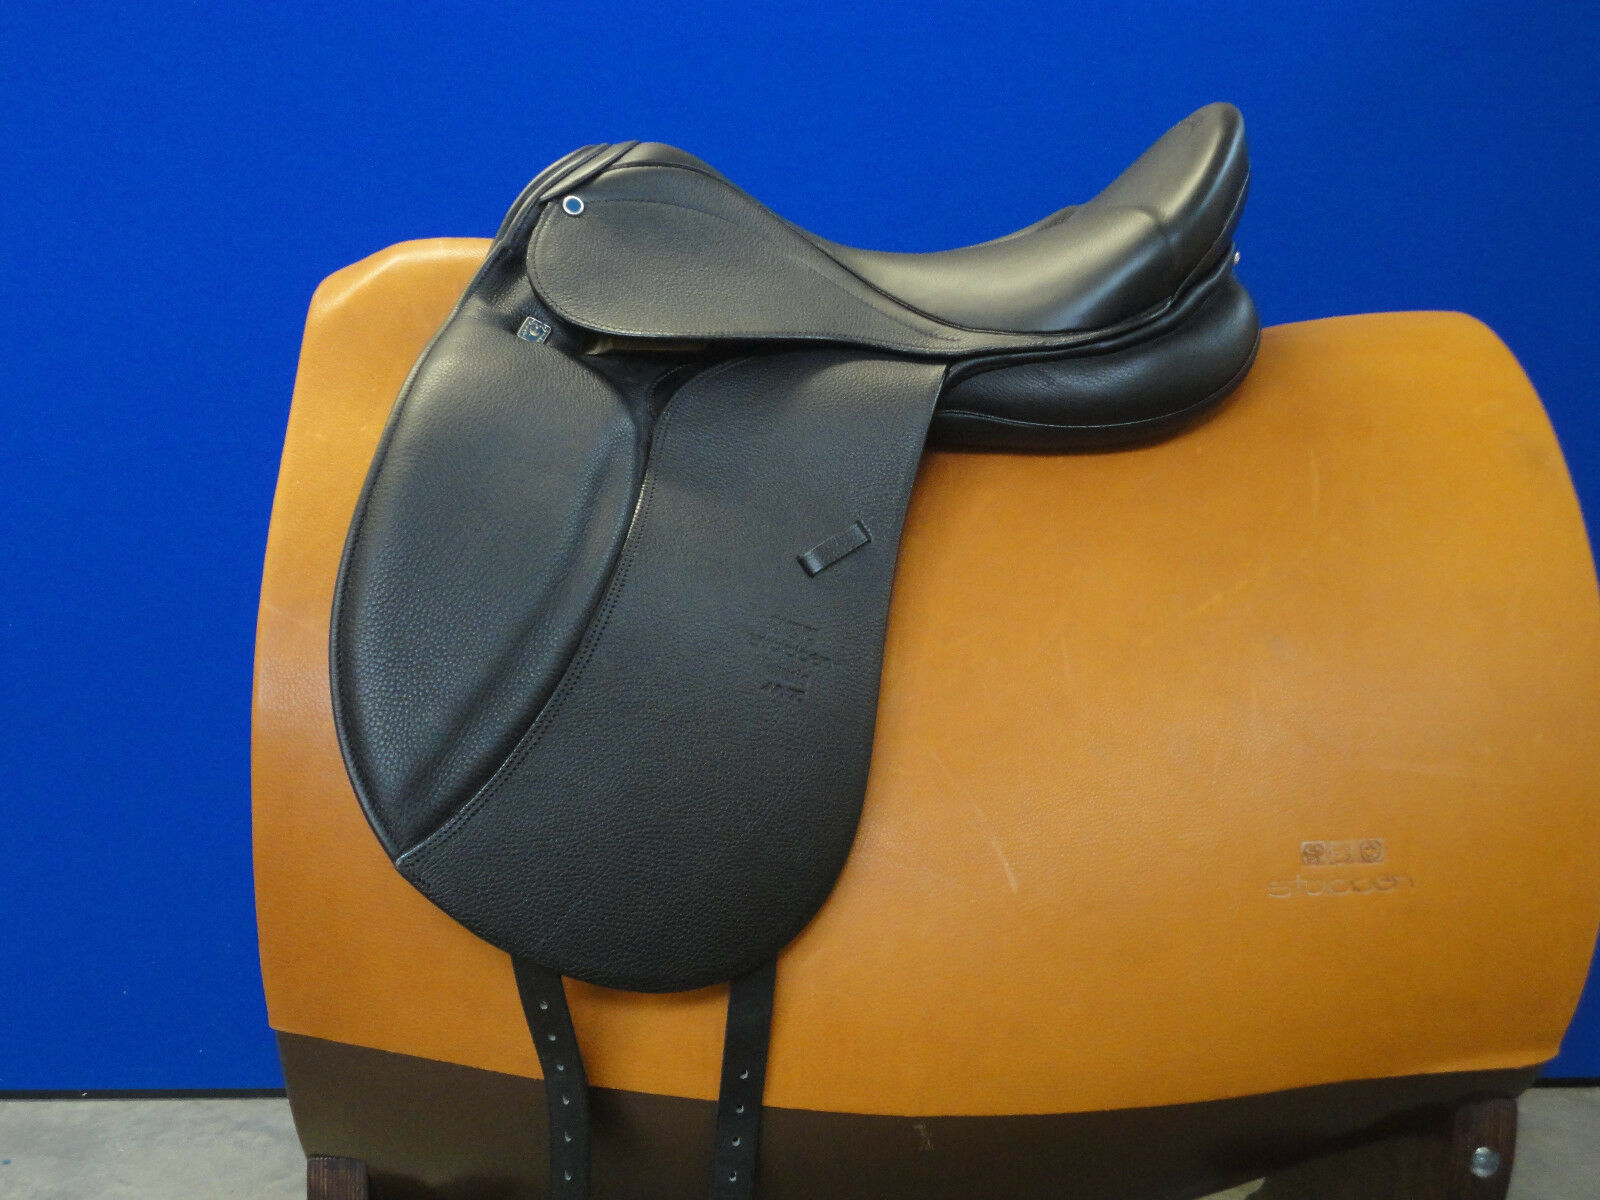 NEW D Stubben D NEW Aramis Dressage Saddle Deluxe Leder 17.5/29cm Biomex Seat c7a304